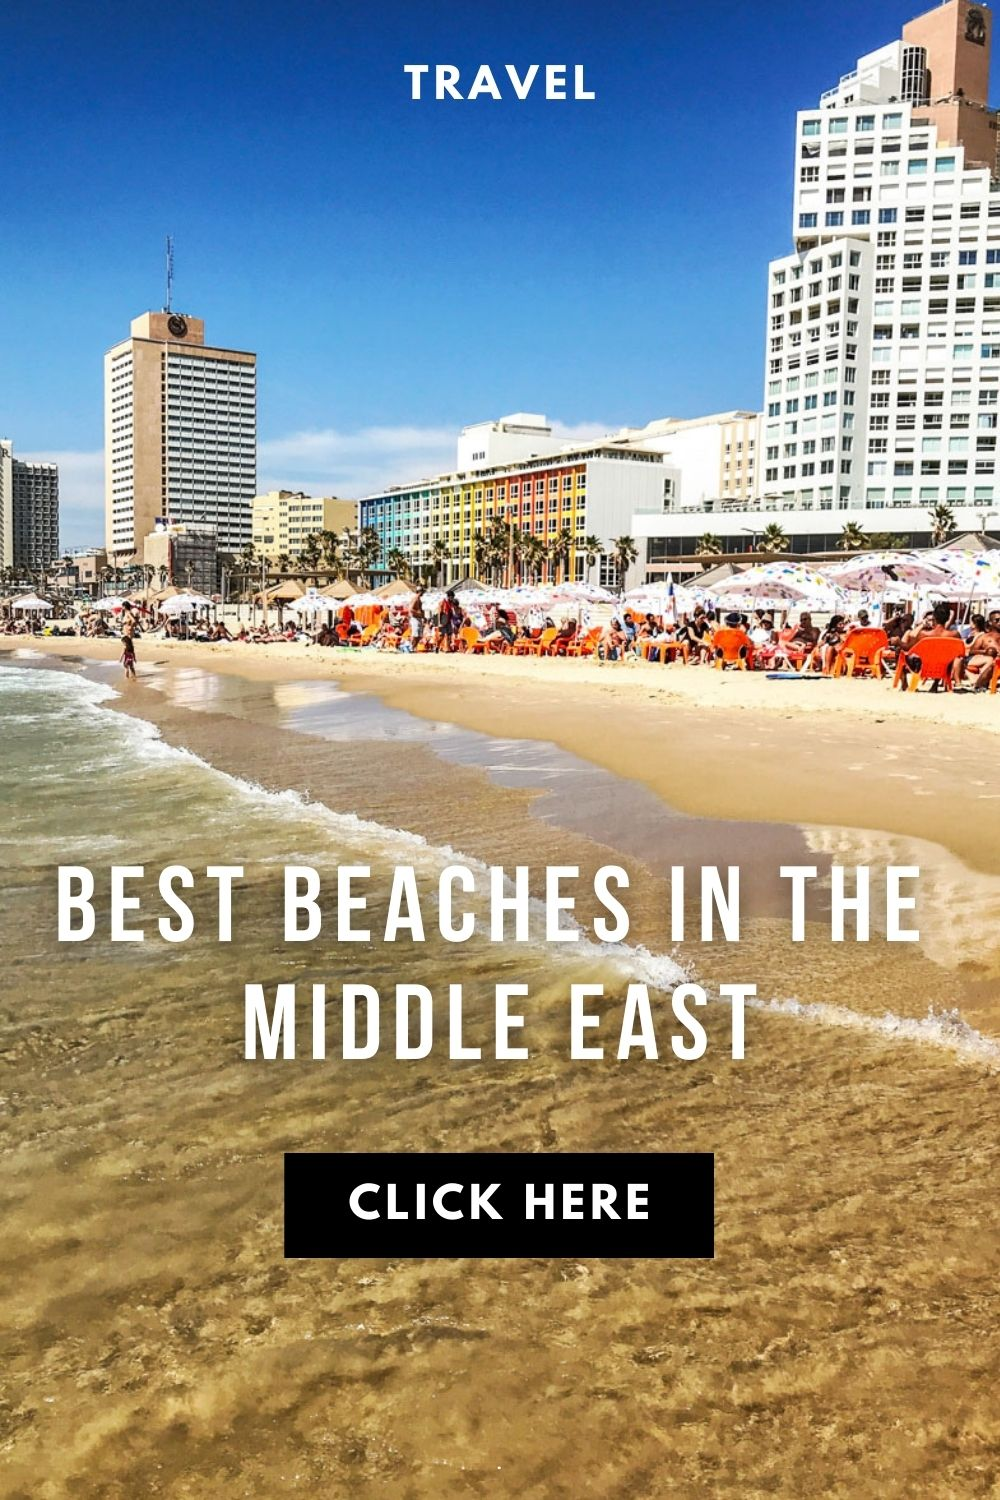 Middle East Best Beaches